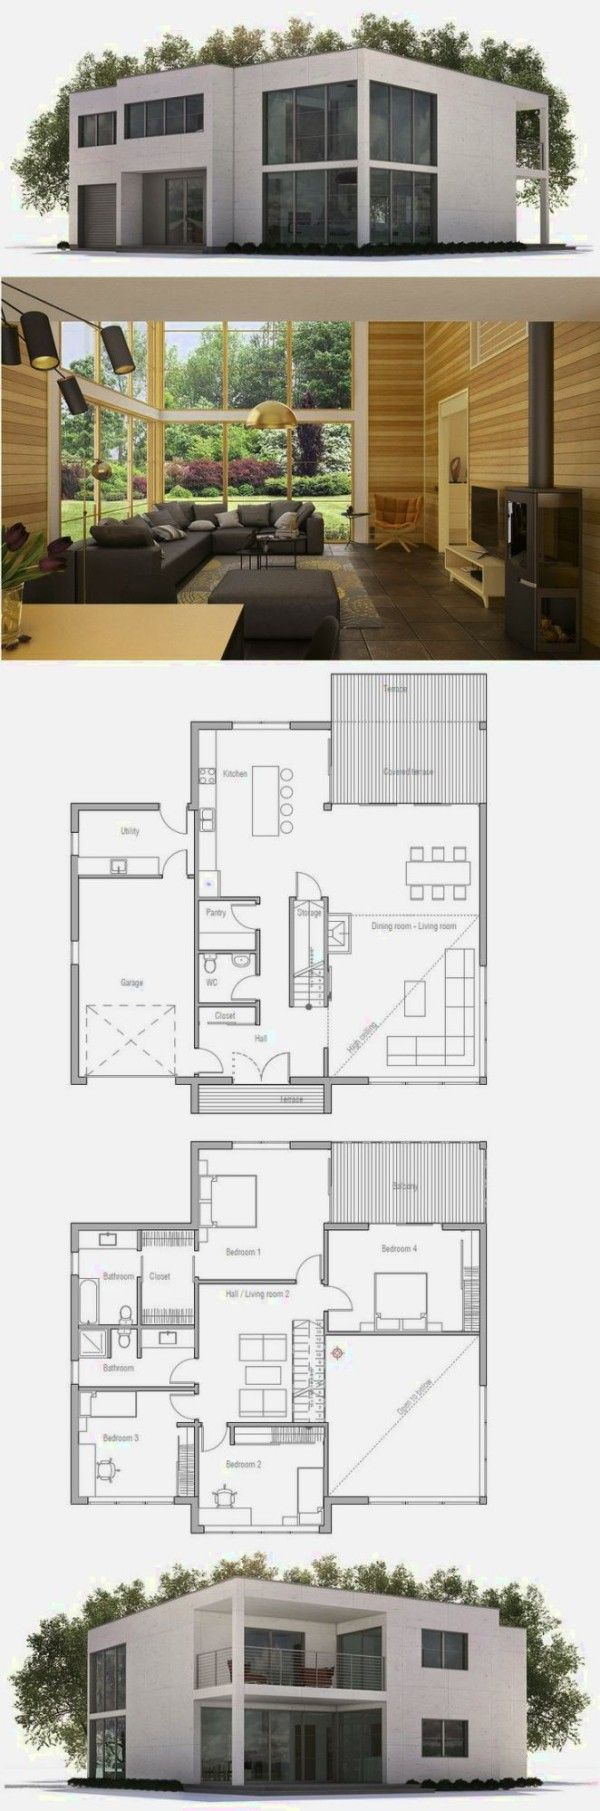 282 best House ideas and plans images on Pinterest